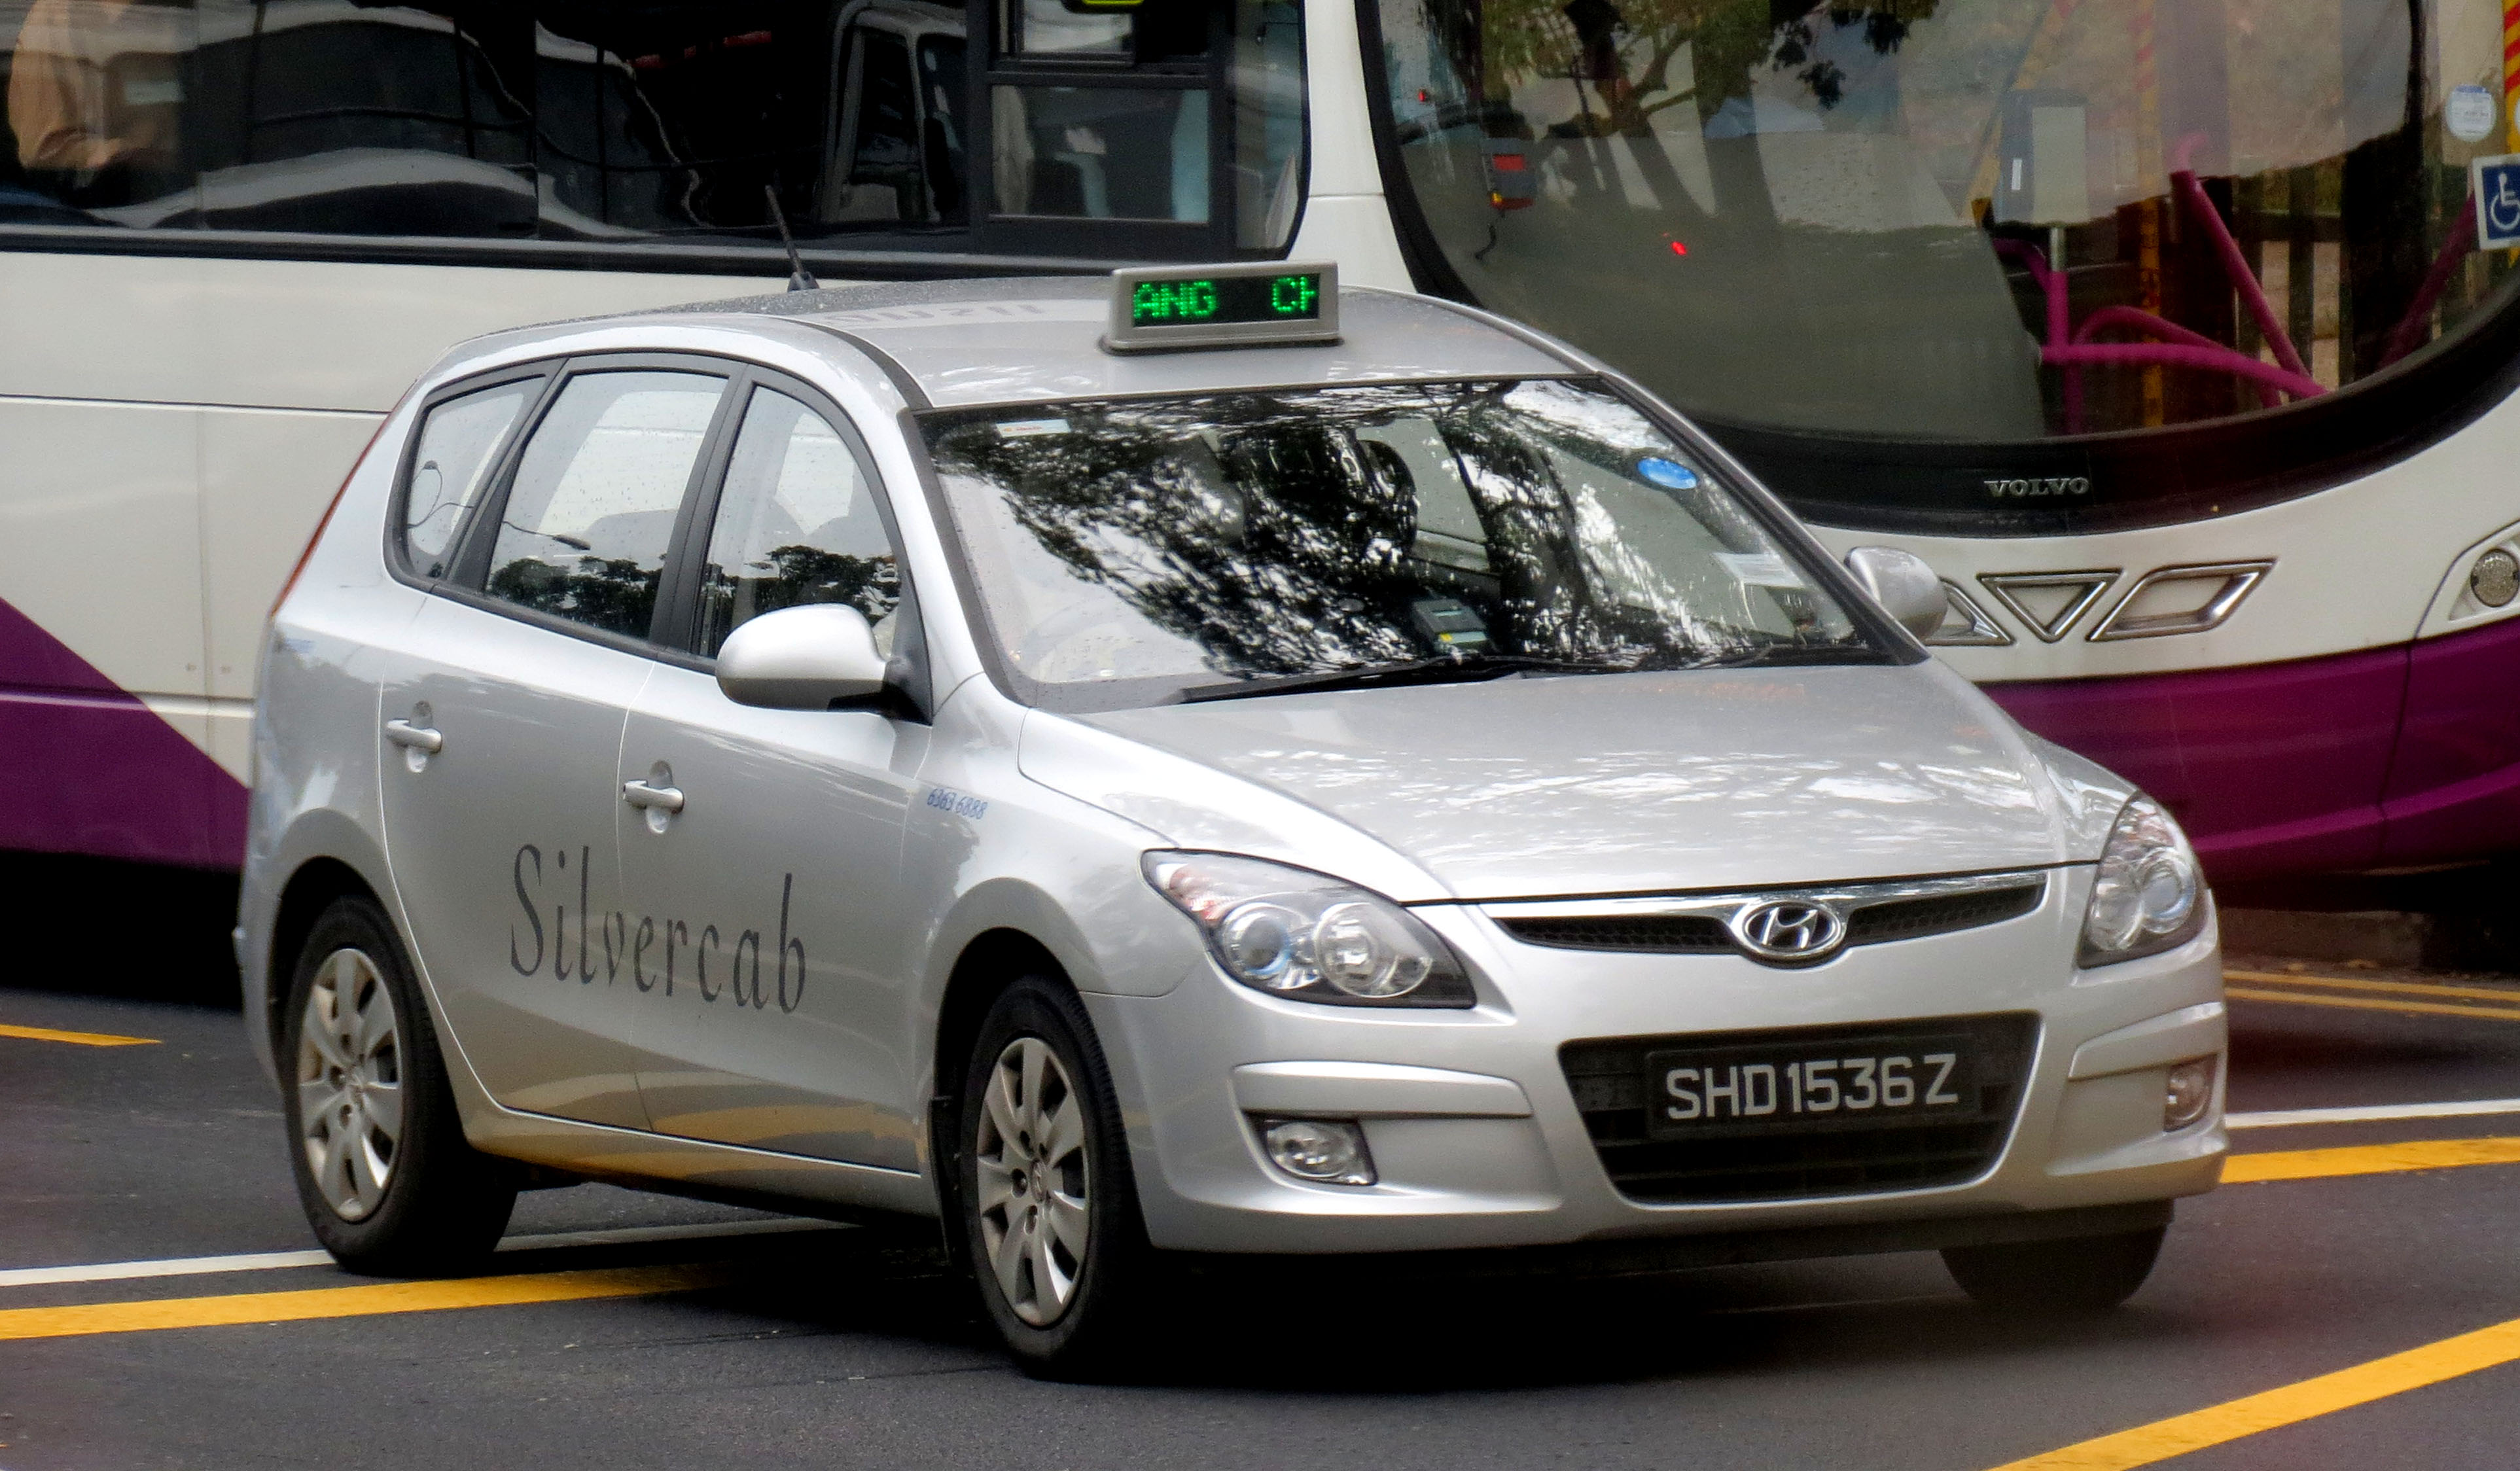 2013 hyundai i30cw pictures information and specs. Black Bedroom Furniture Sets. Home Design Ideas